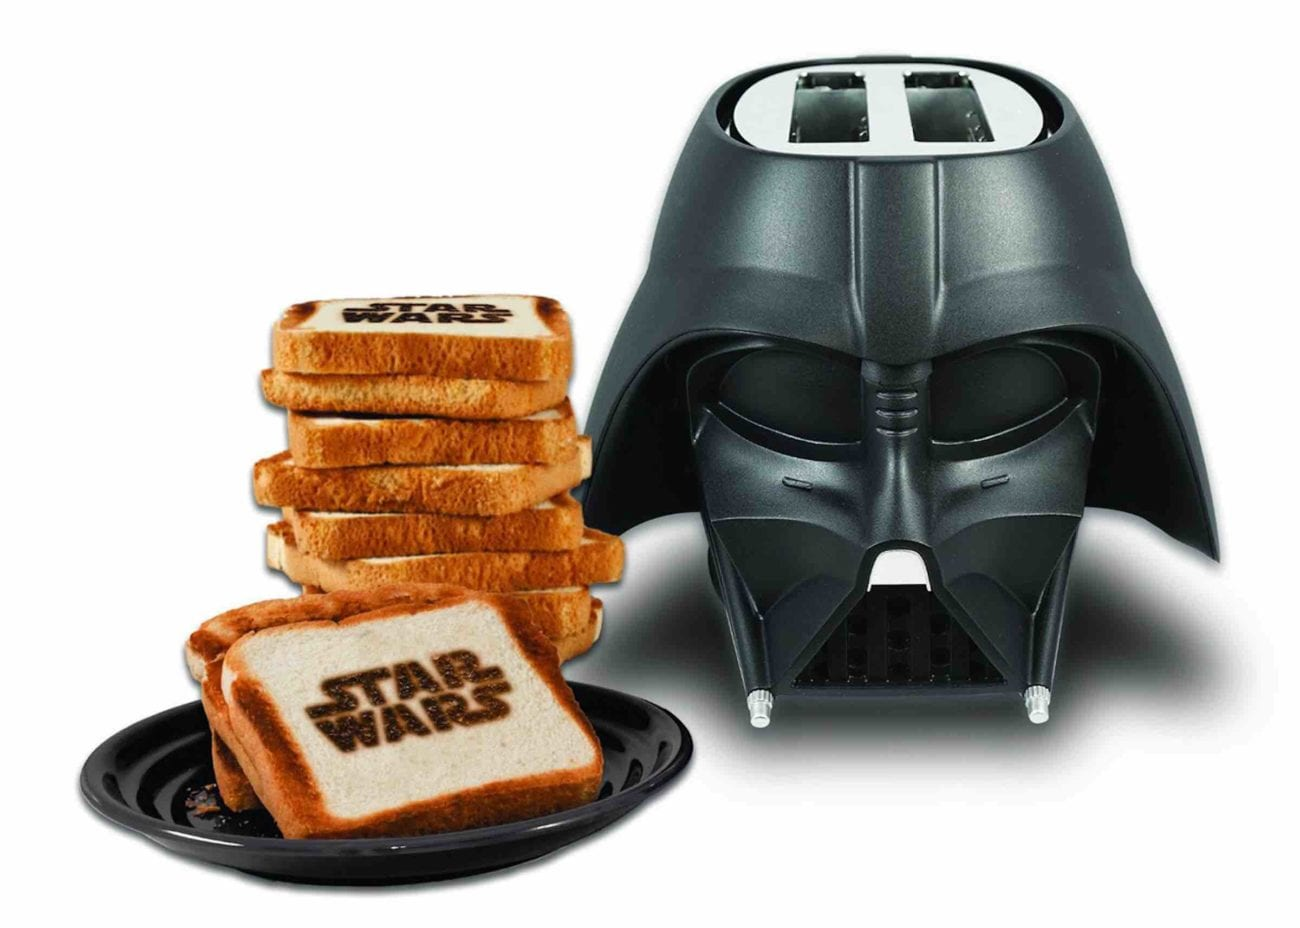 Disney has truly covered every product you could ever need or want for the 'Star Wars' launch. Here's the amazing, and the downright strange in merch.